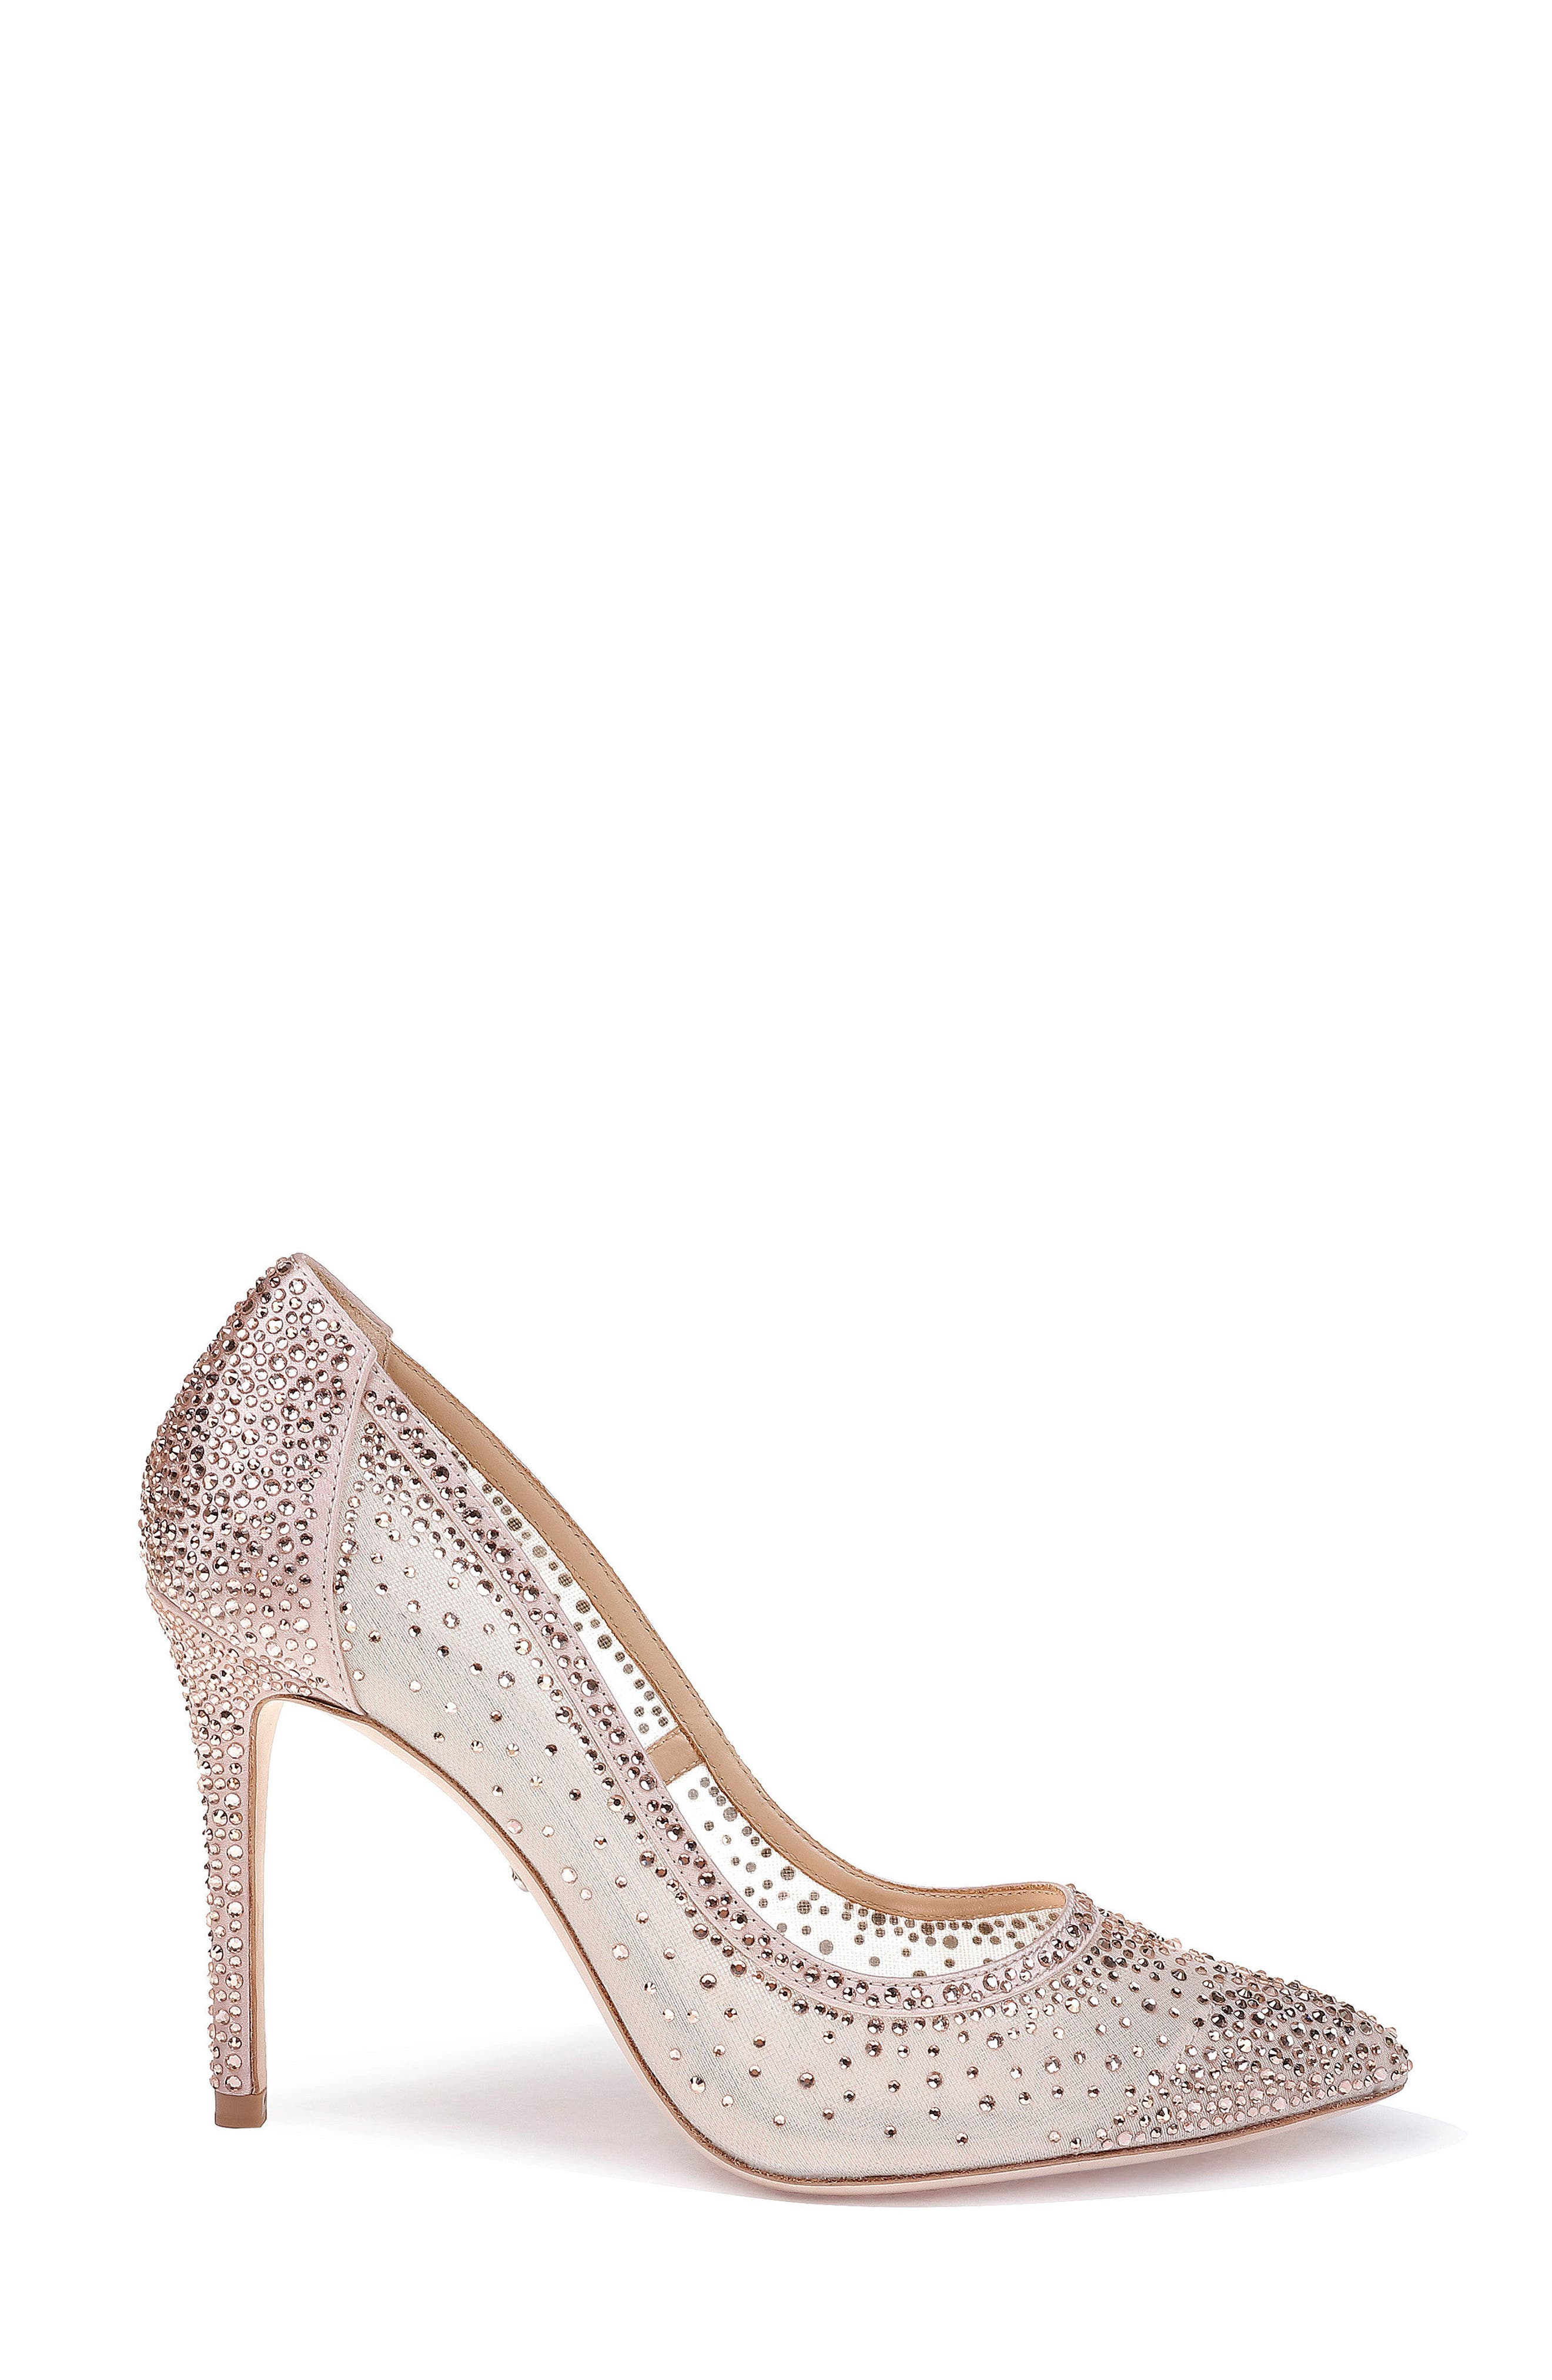 Weslee Pointy Toe Pump,                             Alternate thumbnail 3, color,                             BLUSH SATIN